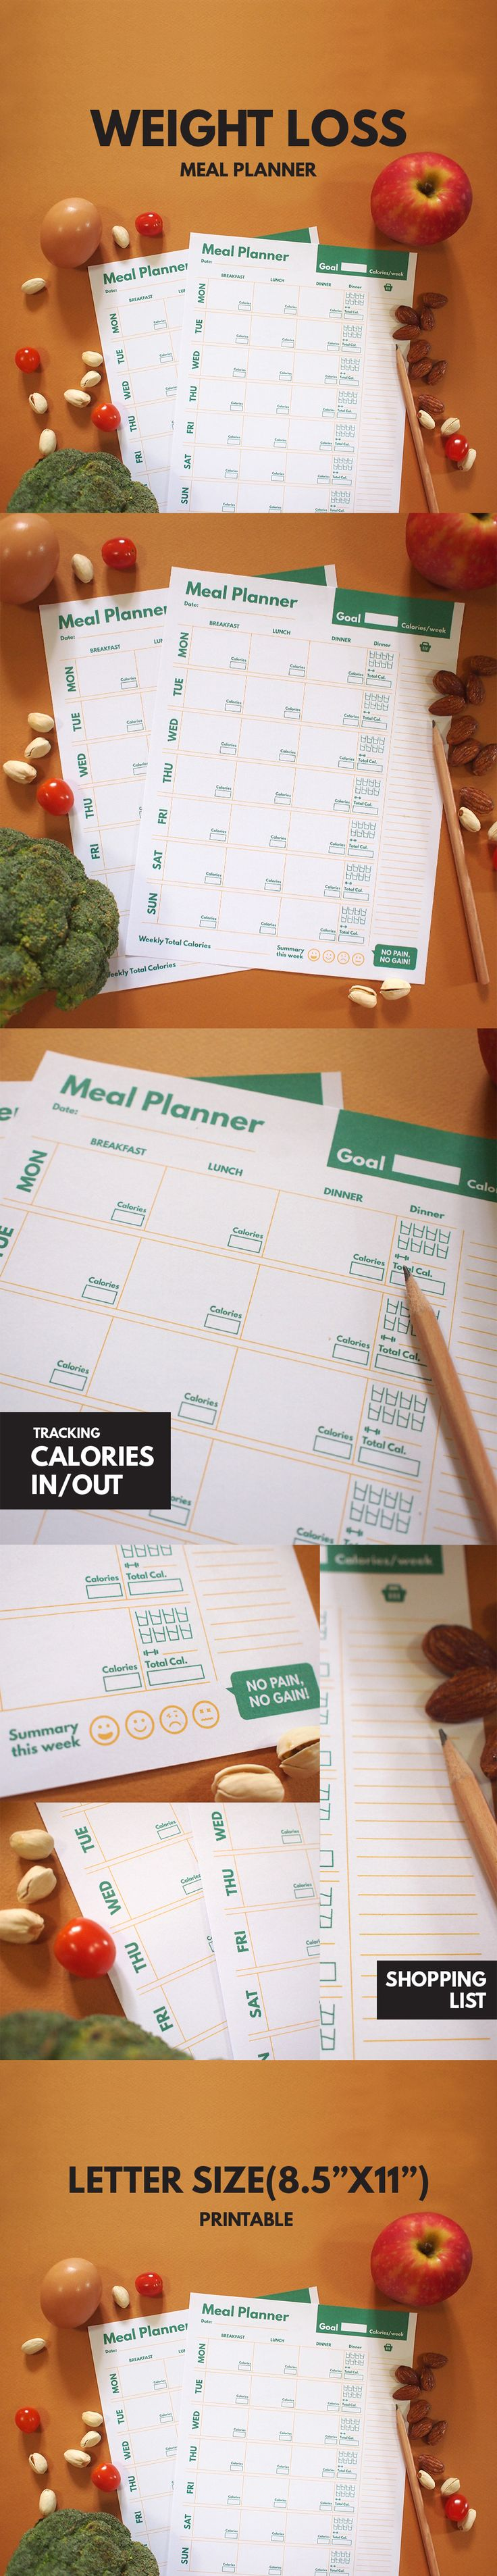 Weight Loss Meal Planner Printable, Diet Planner, Weekly, Groceries List,  Goal Planner, Healthy Planner, Calories Tracker, PDF, GetWellPlan Part 77